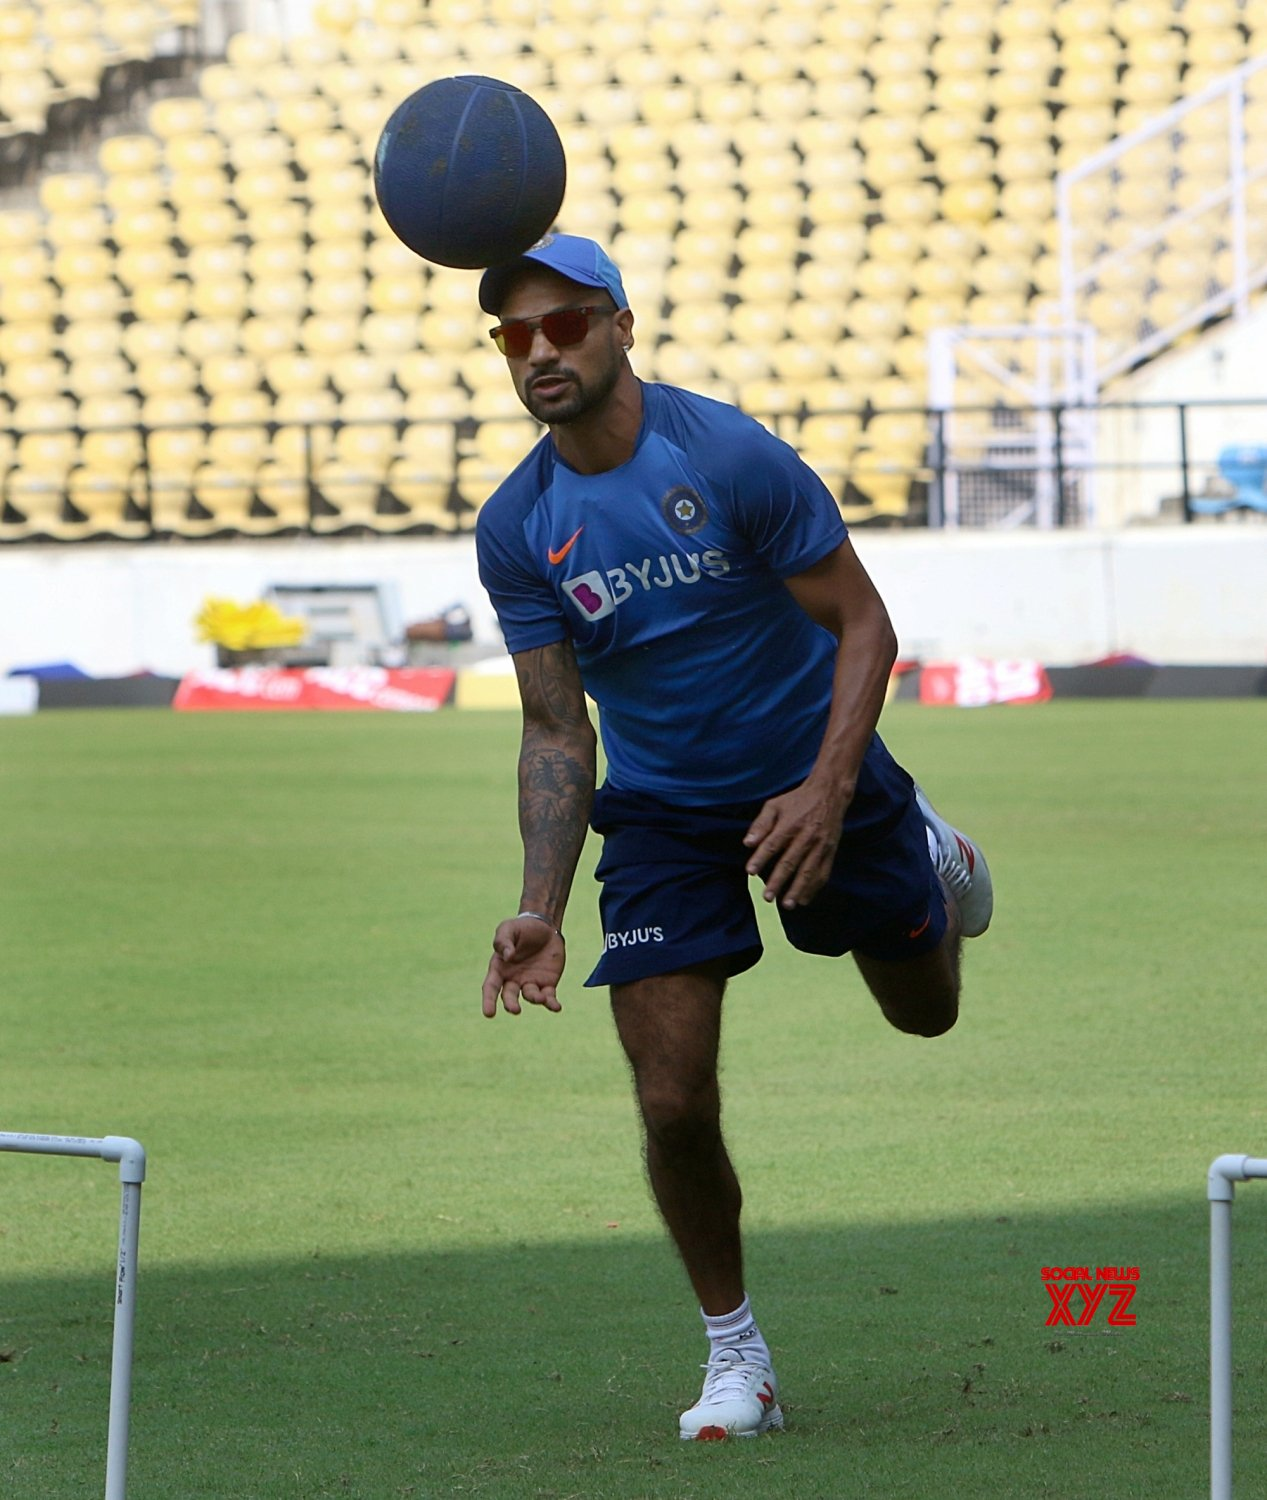 Nagpur: India practice session (Batch - 4) #Gallery